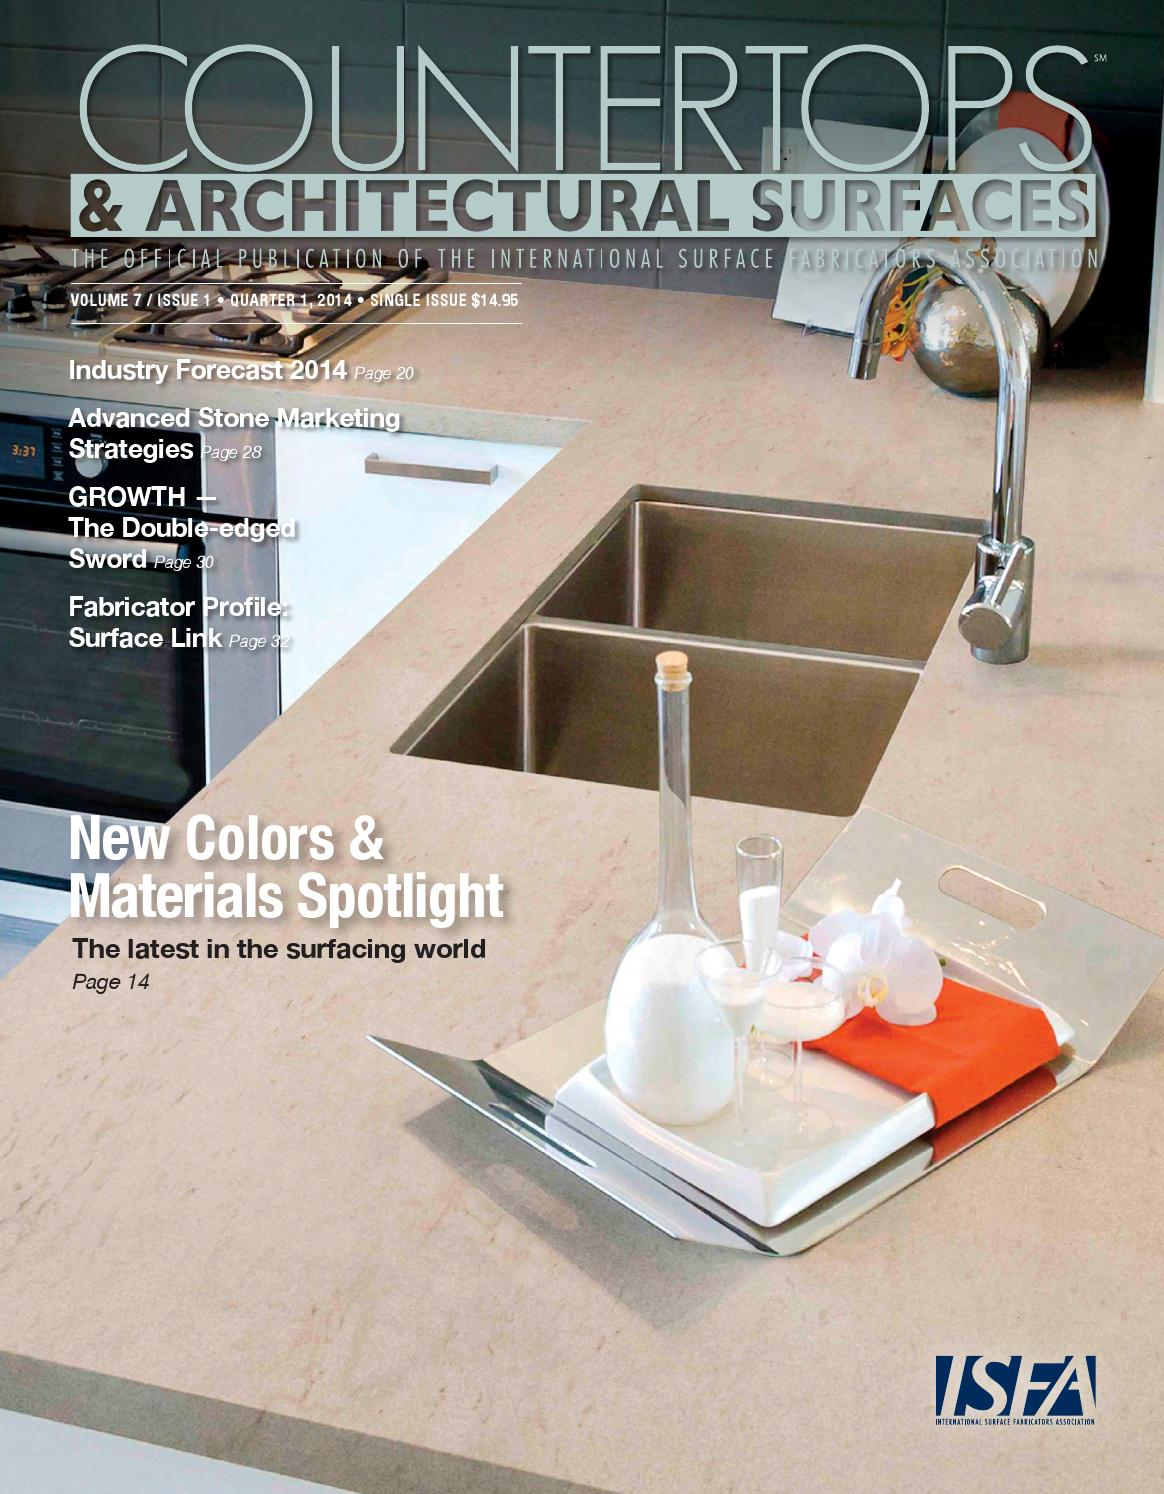 ISFA's Countertops & Architectural Surfaces Vol  7, Issue 1 - Q1